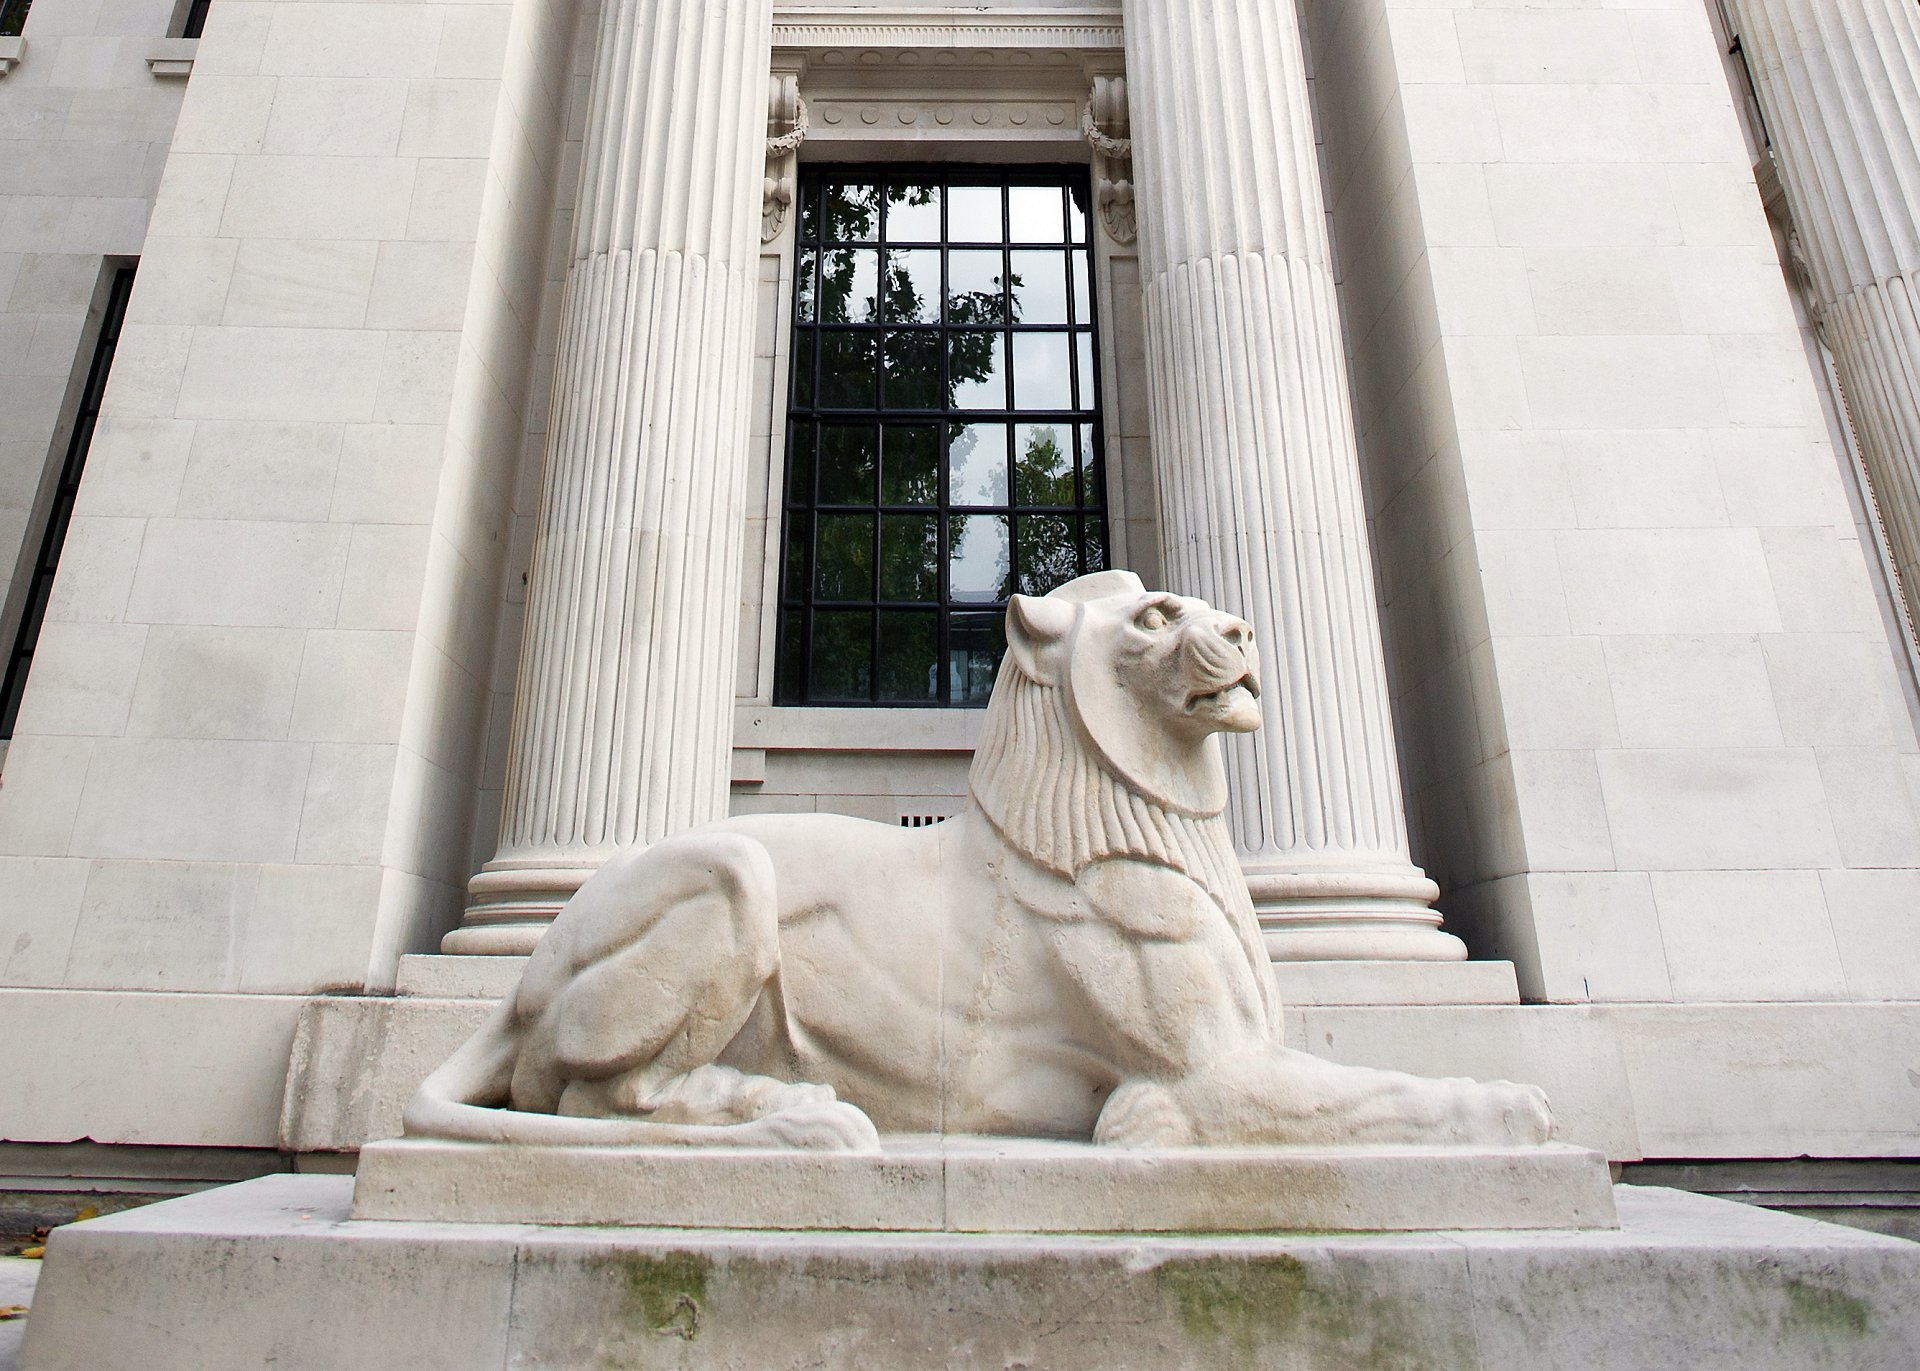 One of two stone lions outside Old Marylebone Town Hall after a thorough clean in 2017